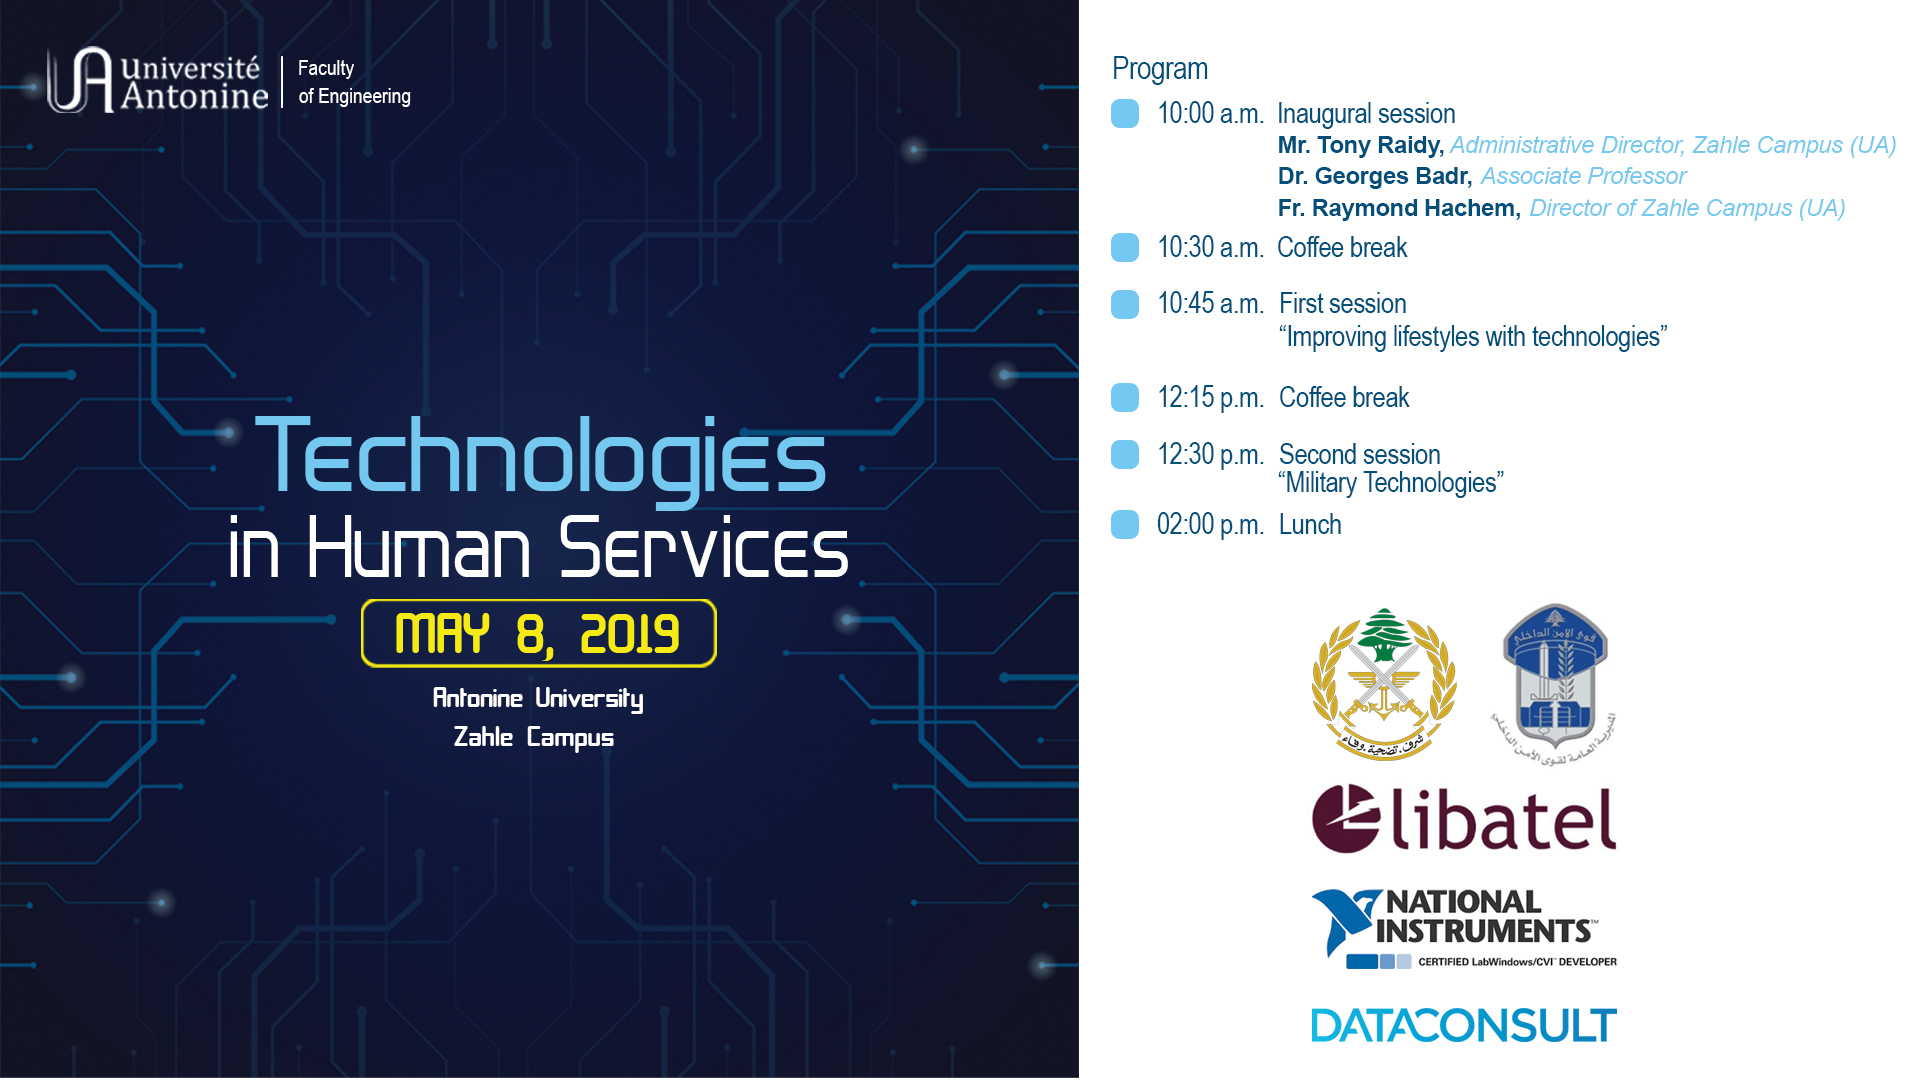 Technologies in Human Services